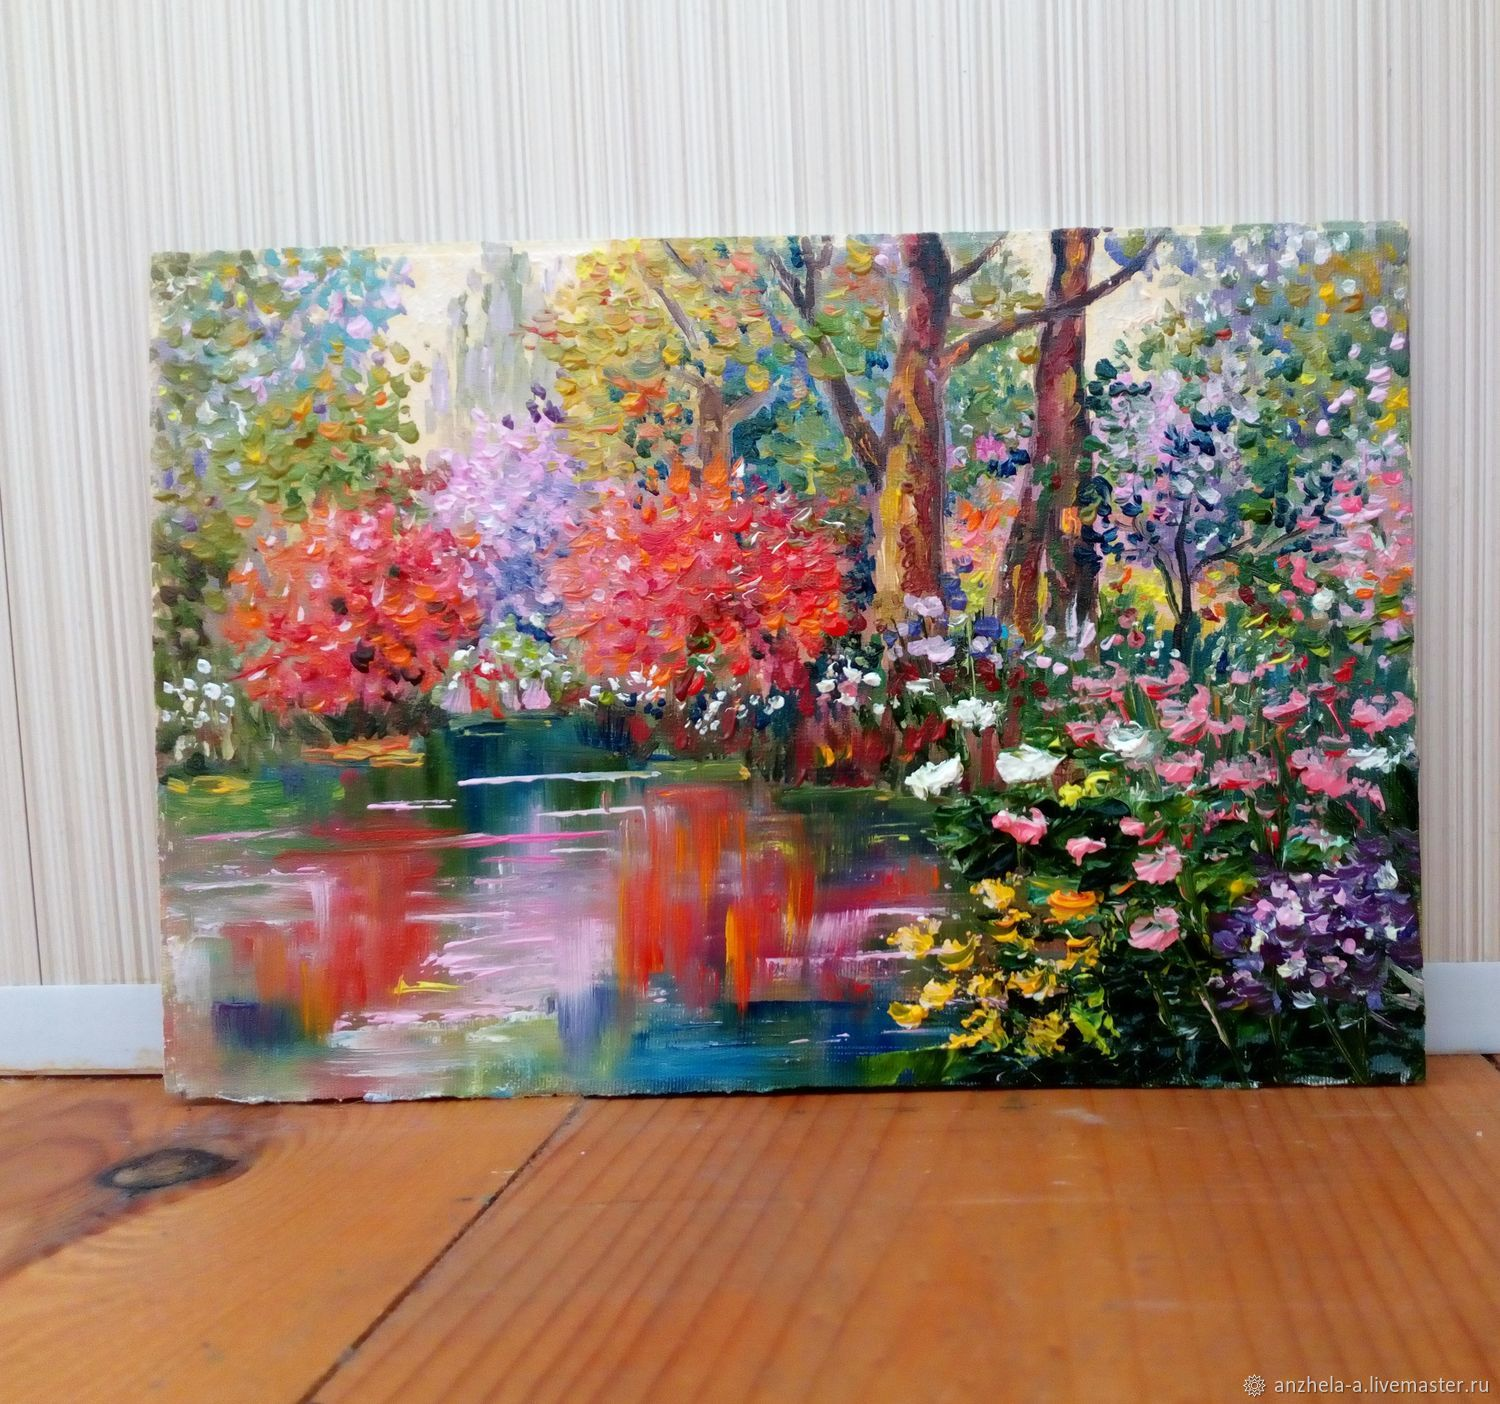 Painting 'in the shadow of a wild pond' miniature, Pictures, Moscow,  Фото №1